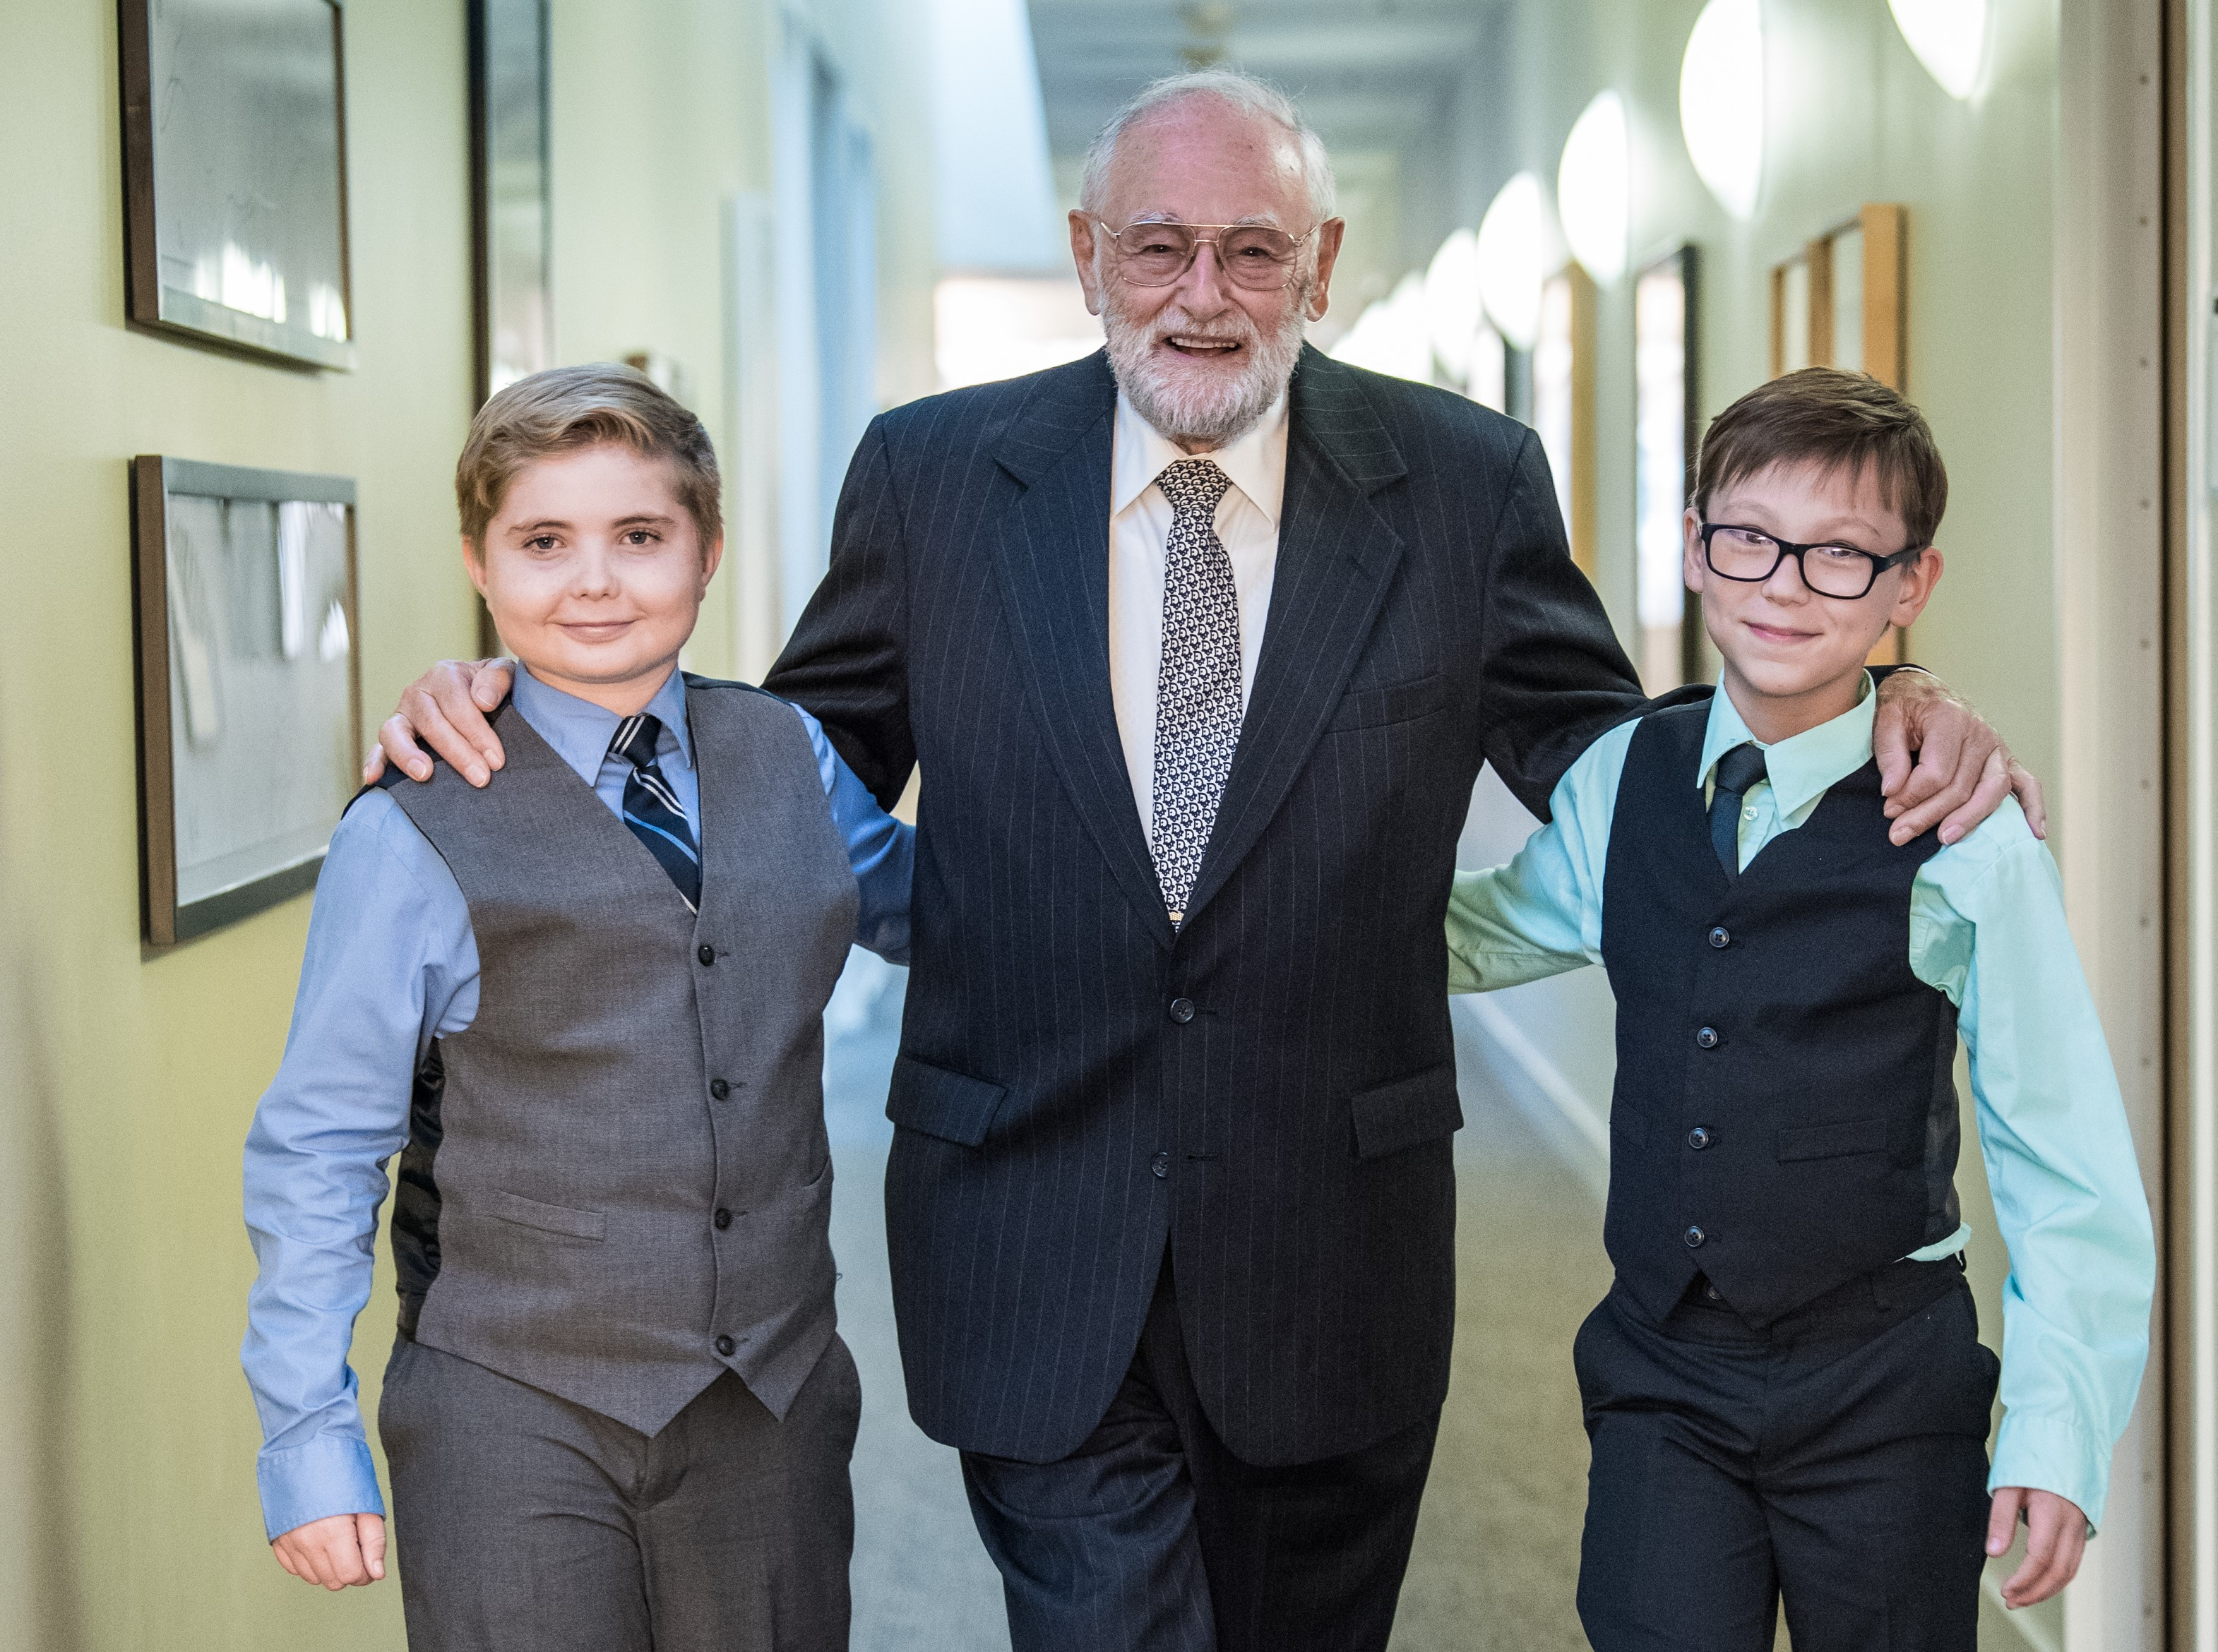 Holocaust survivor Peter Feigl meets, from left, Thomas Gnacke and Dane Kassube at Chapman University. Gnacke and Kassube took first-place in National History Day's Junior Group Documentary Category. The students interviewed Feigl by Skype, but this was their first face-to-face meeting.